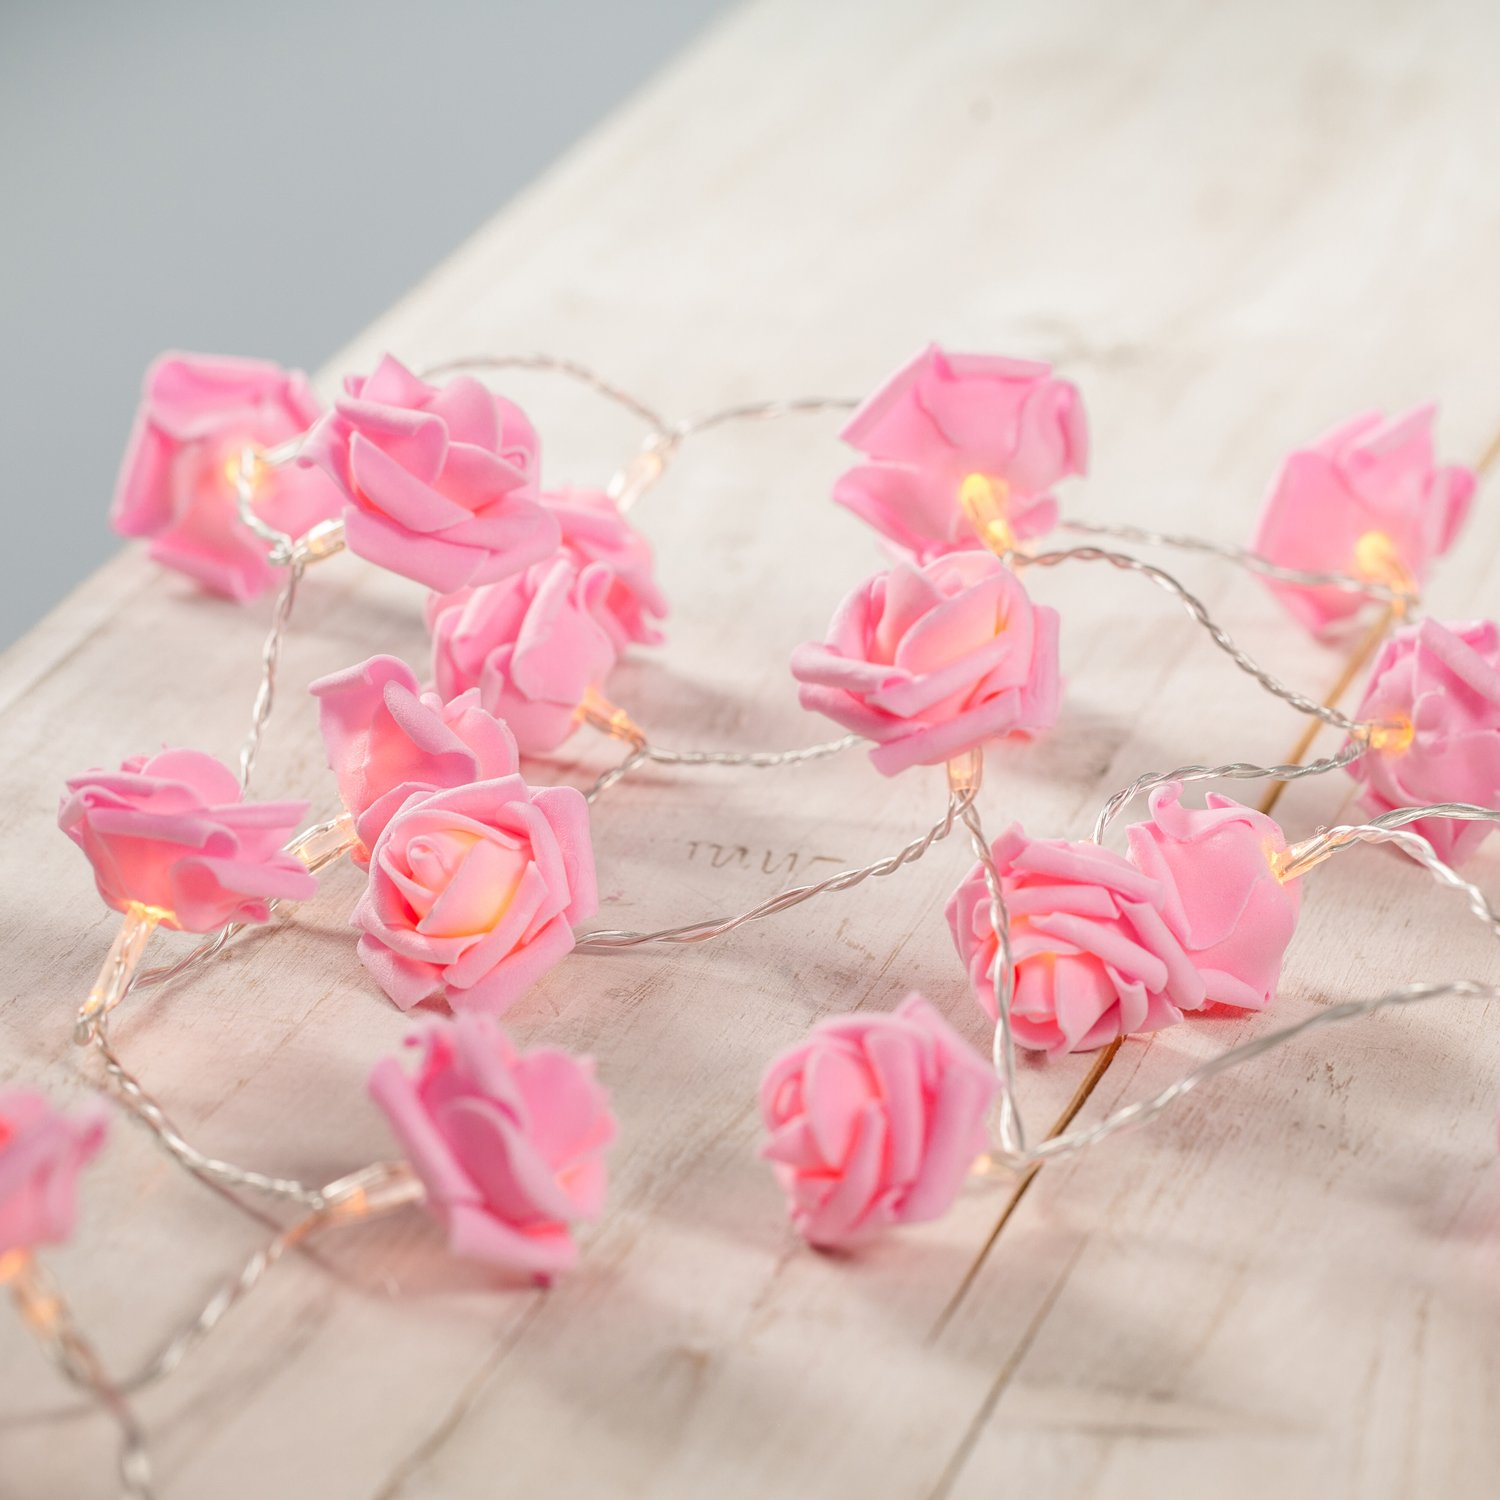 30 LED Pink Rose Flower Indoor Fairy Lights by Lights4fun: Amazon.co.uk:  Kitchen u0026 Home